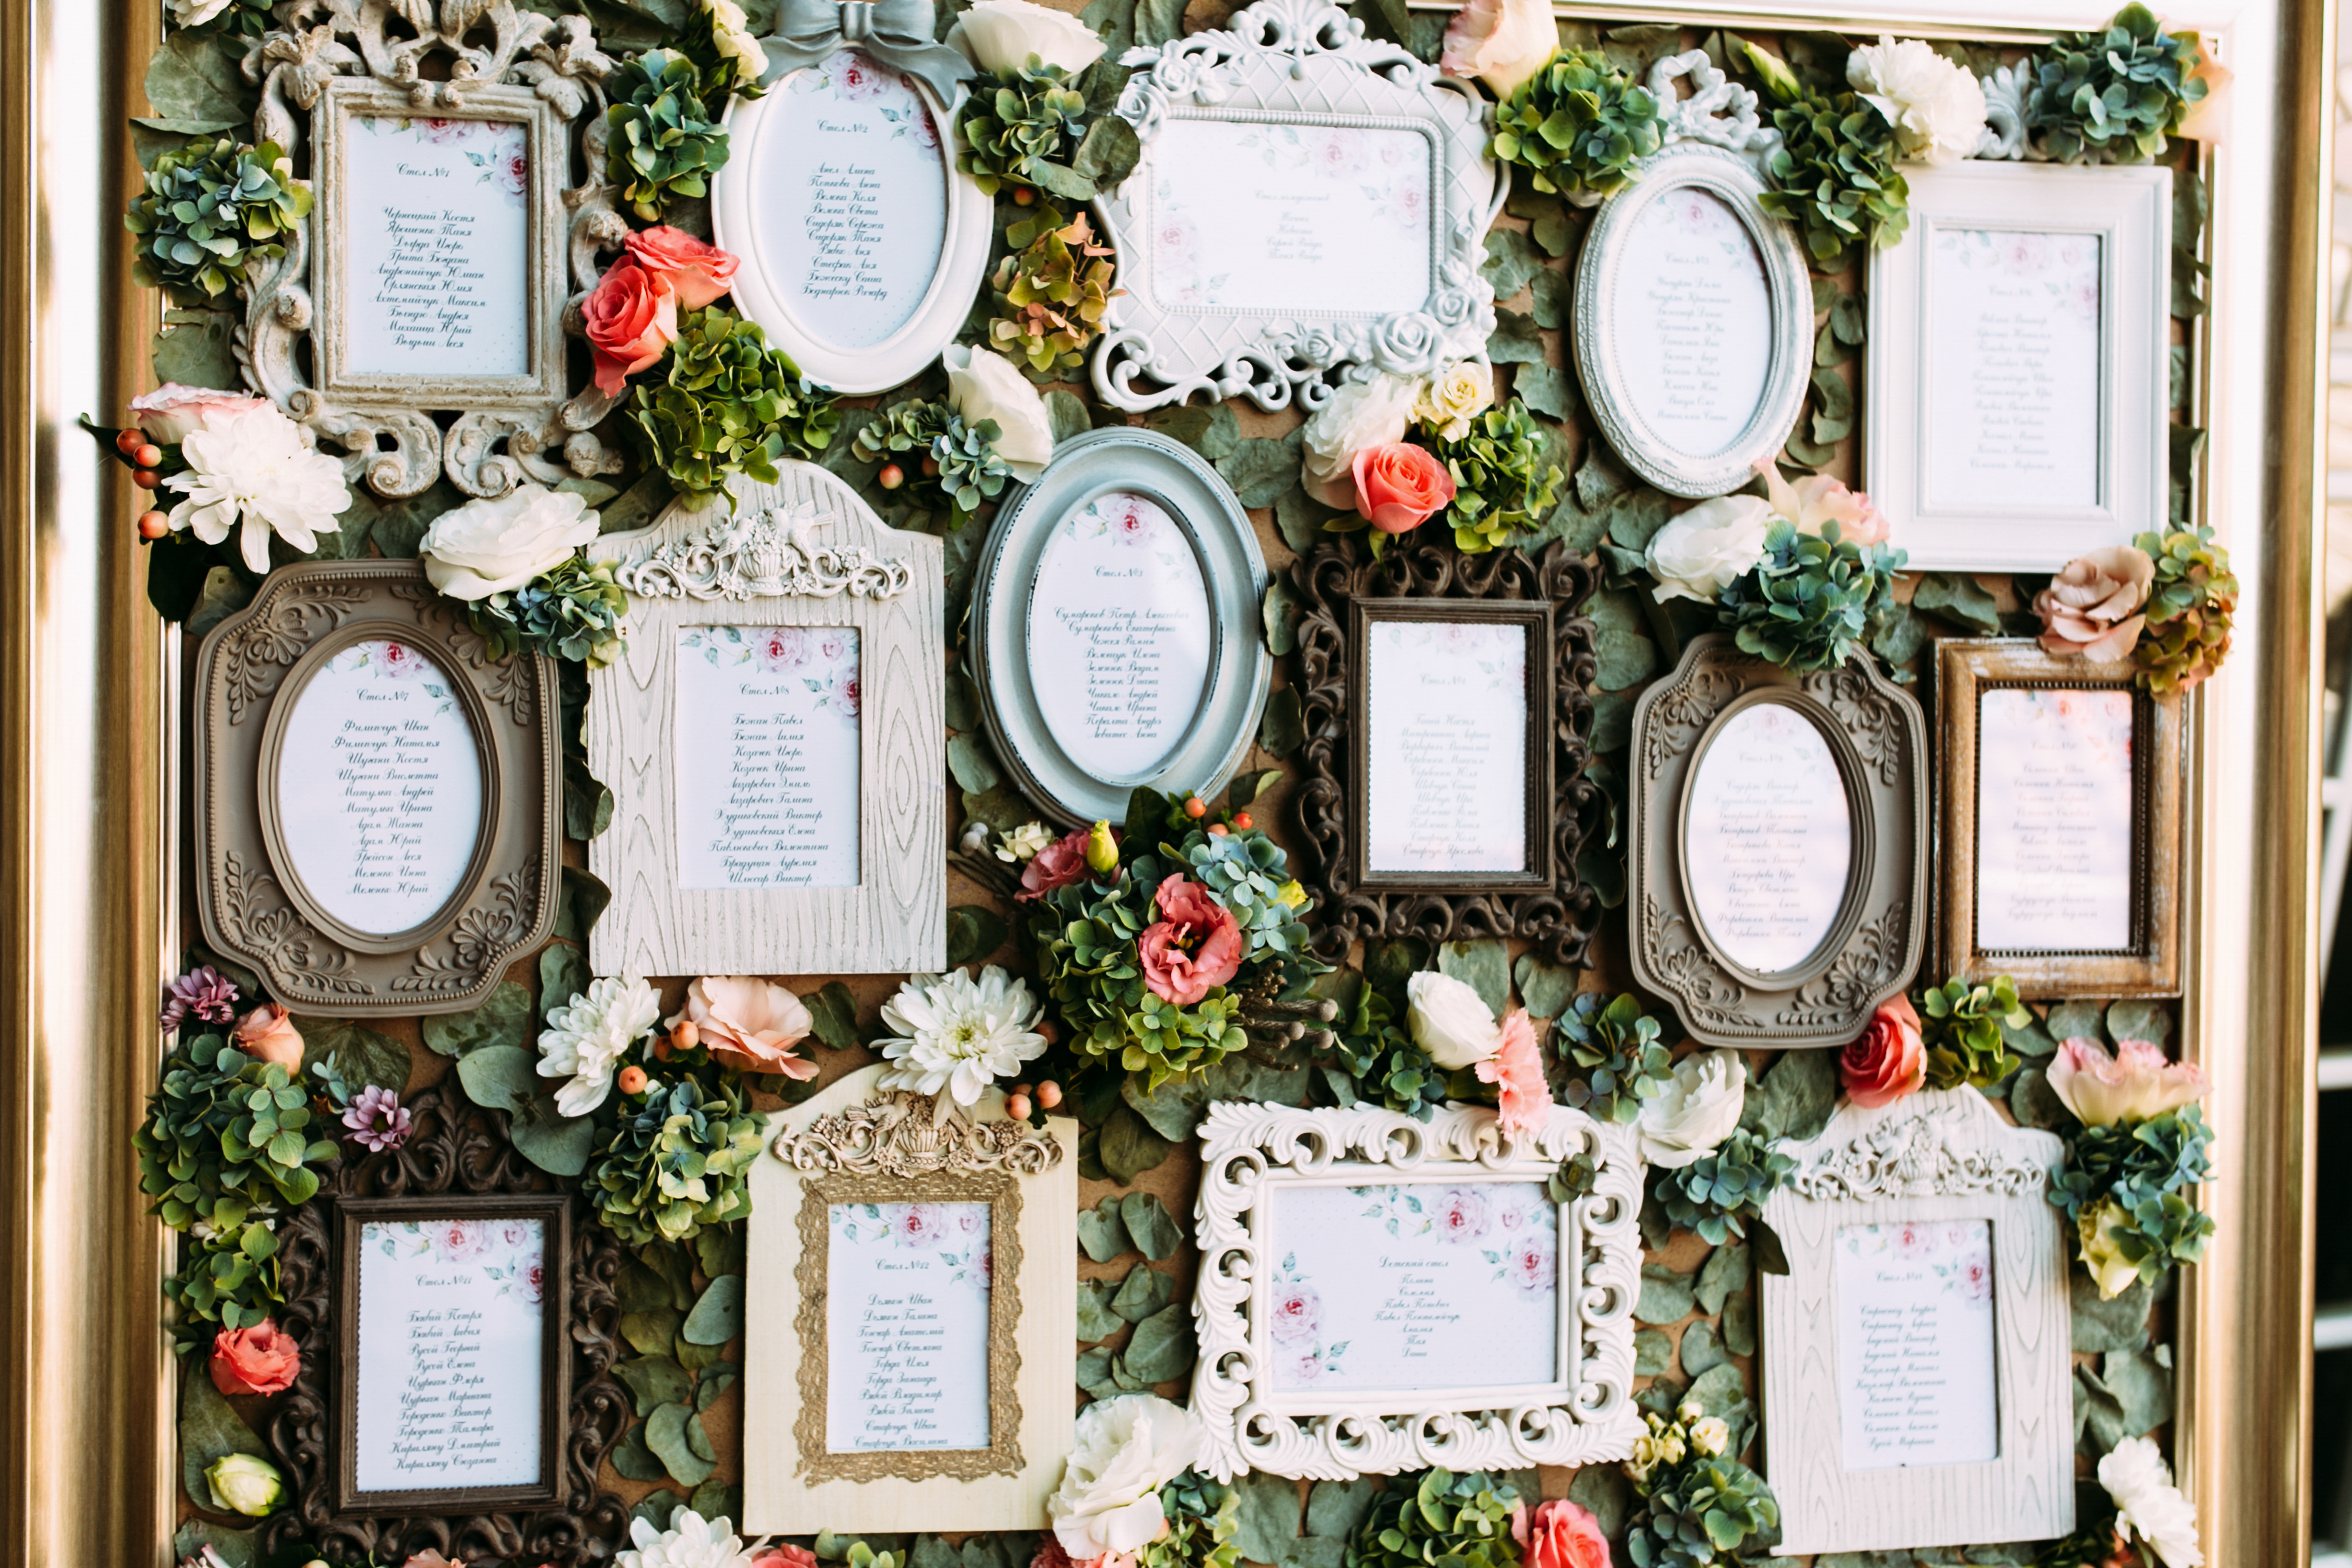 Vintage frames with the list of the wedd